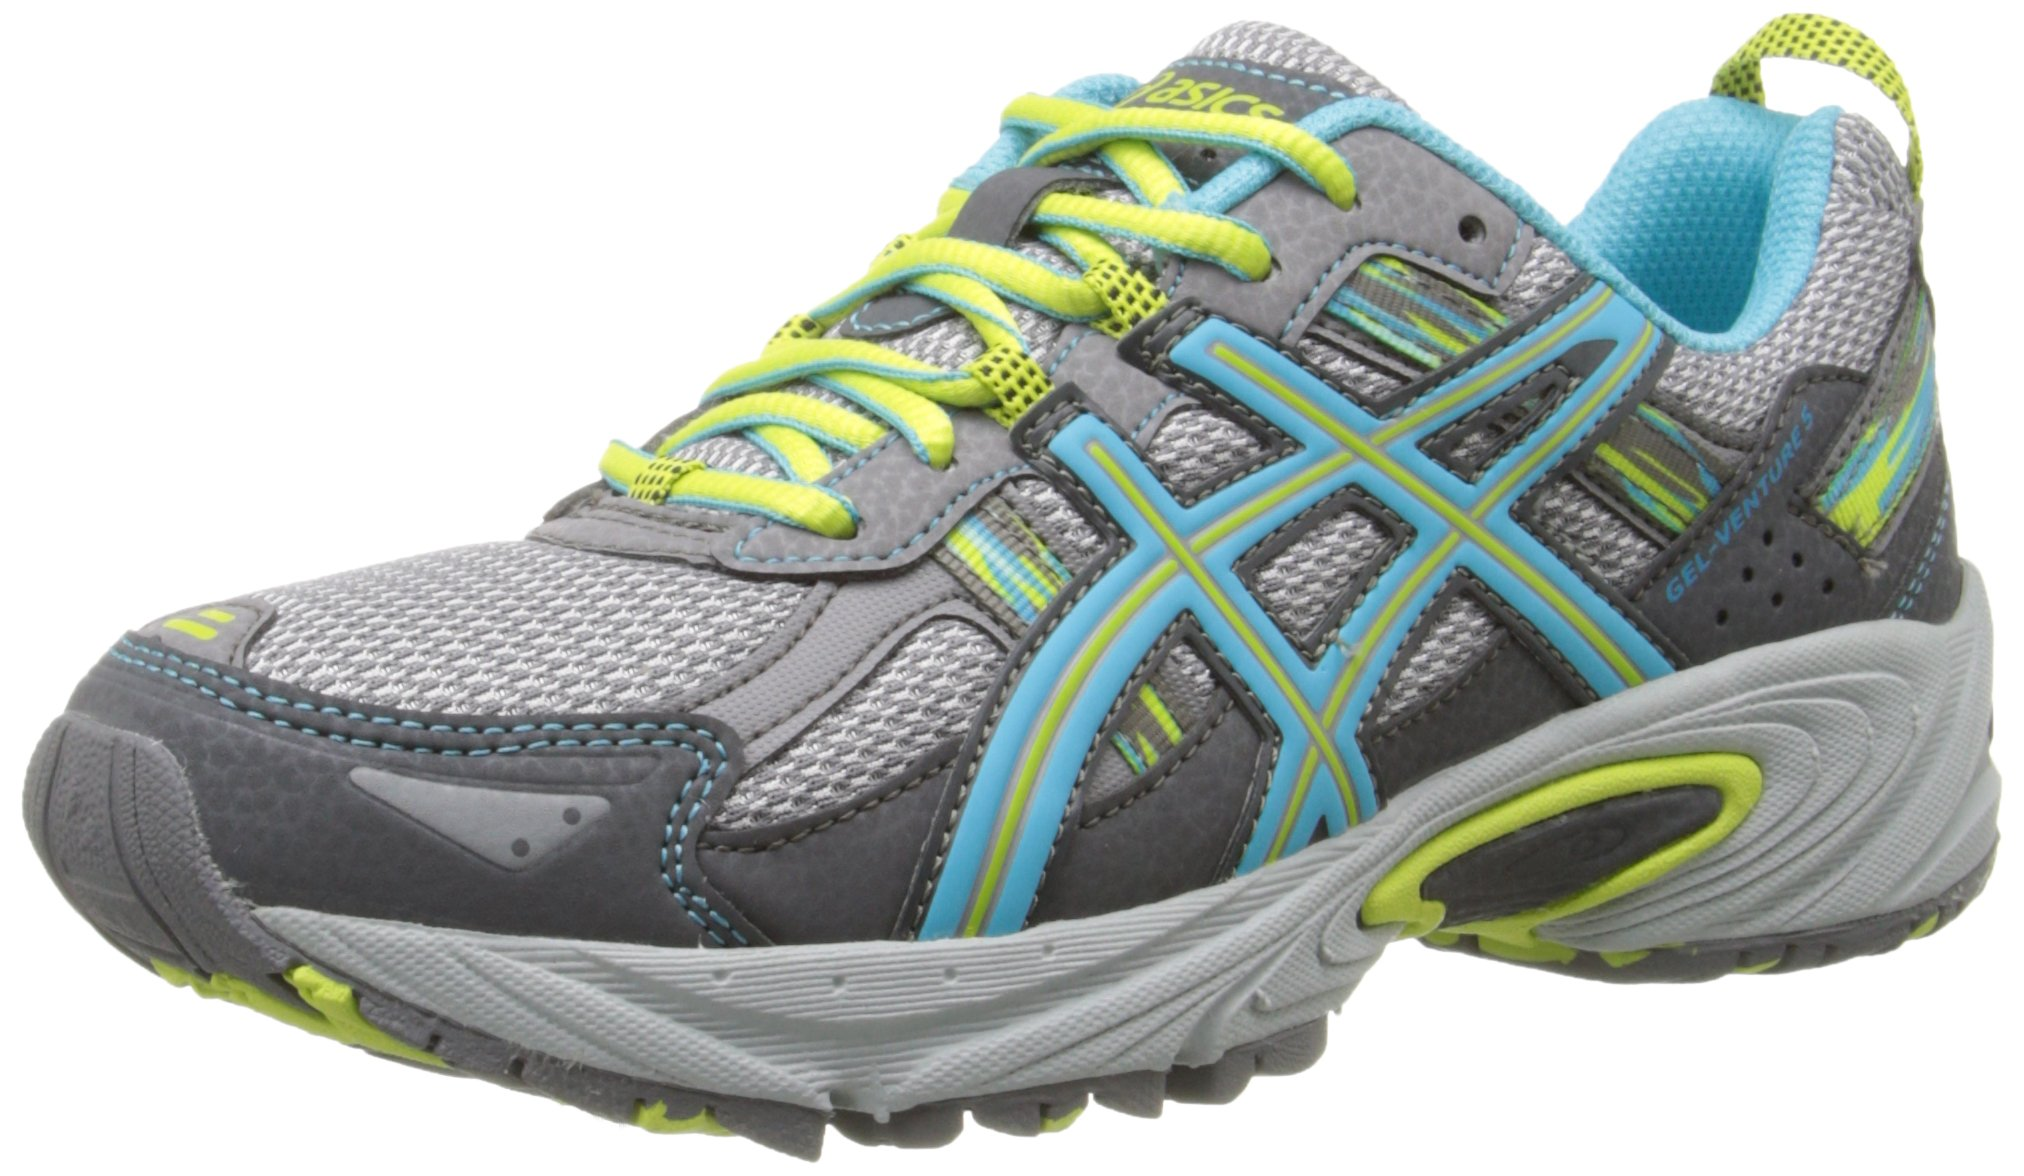 ASICS Women's Gel-Venture 5 Running Shoe, Silver Grey/Turquoise/Lime Punch, 6 D US